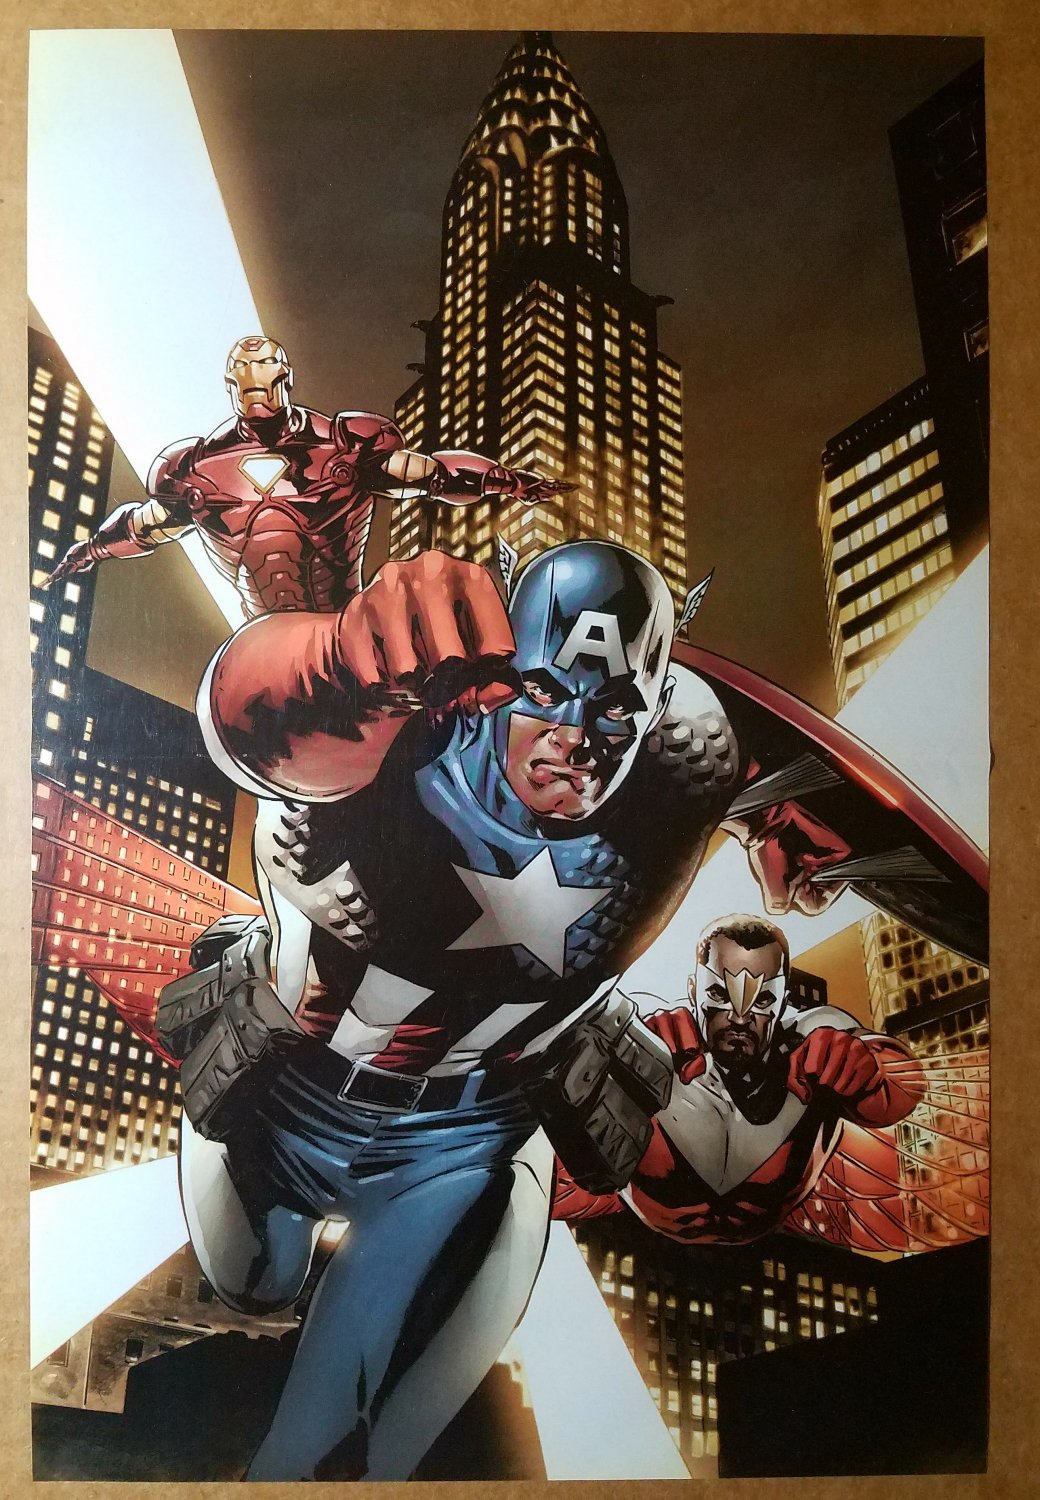 Avengers Captain America The Falcon Iron Man Marvel Comic Poster by Steve Epting